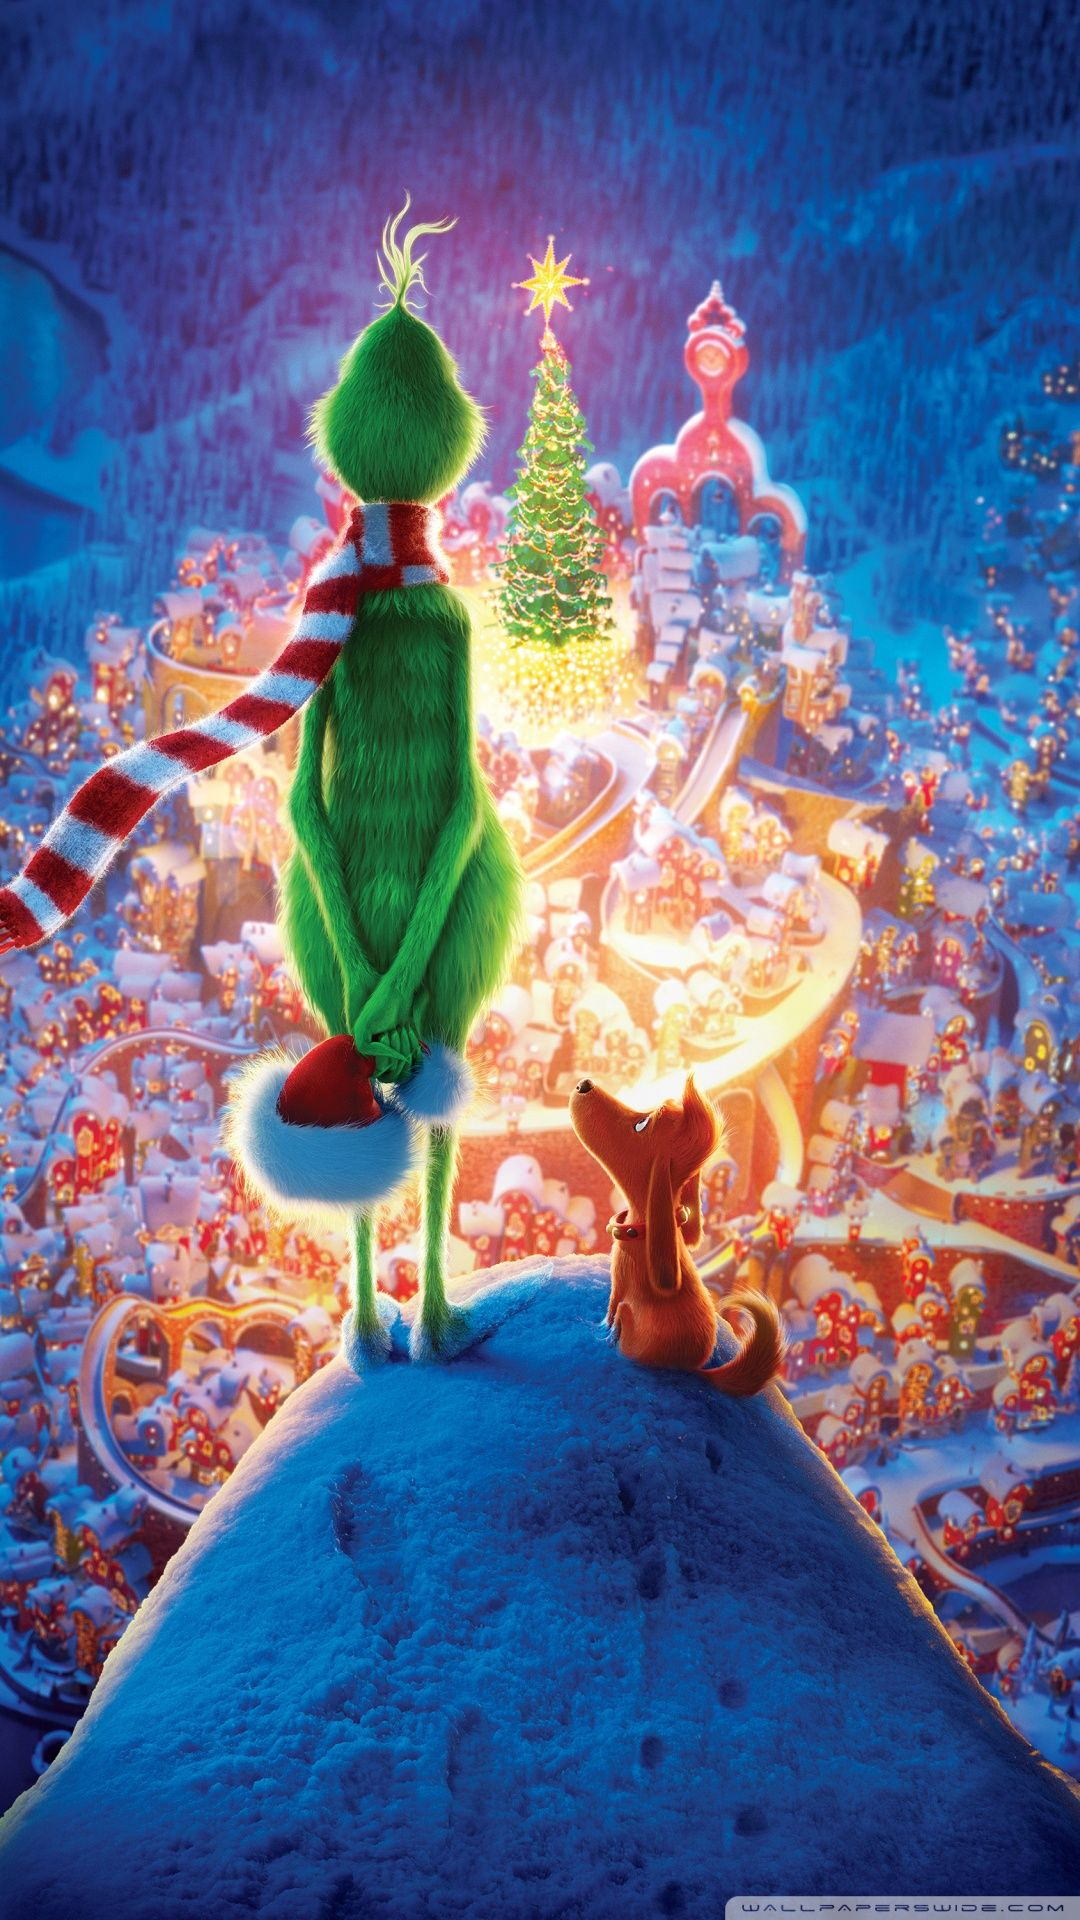 Vintage The Grinch Wallpaper Iphone in 2020 Wallpaper